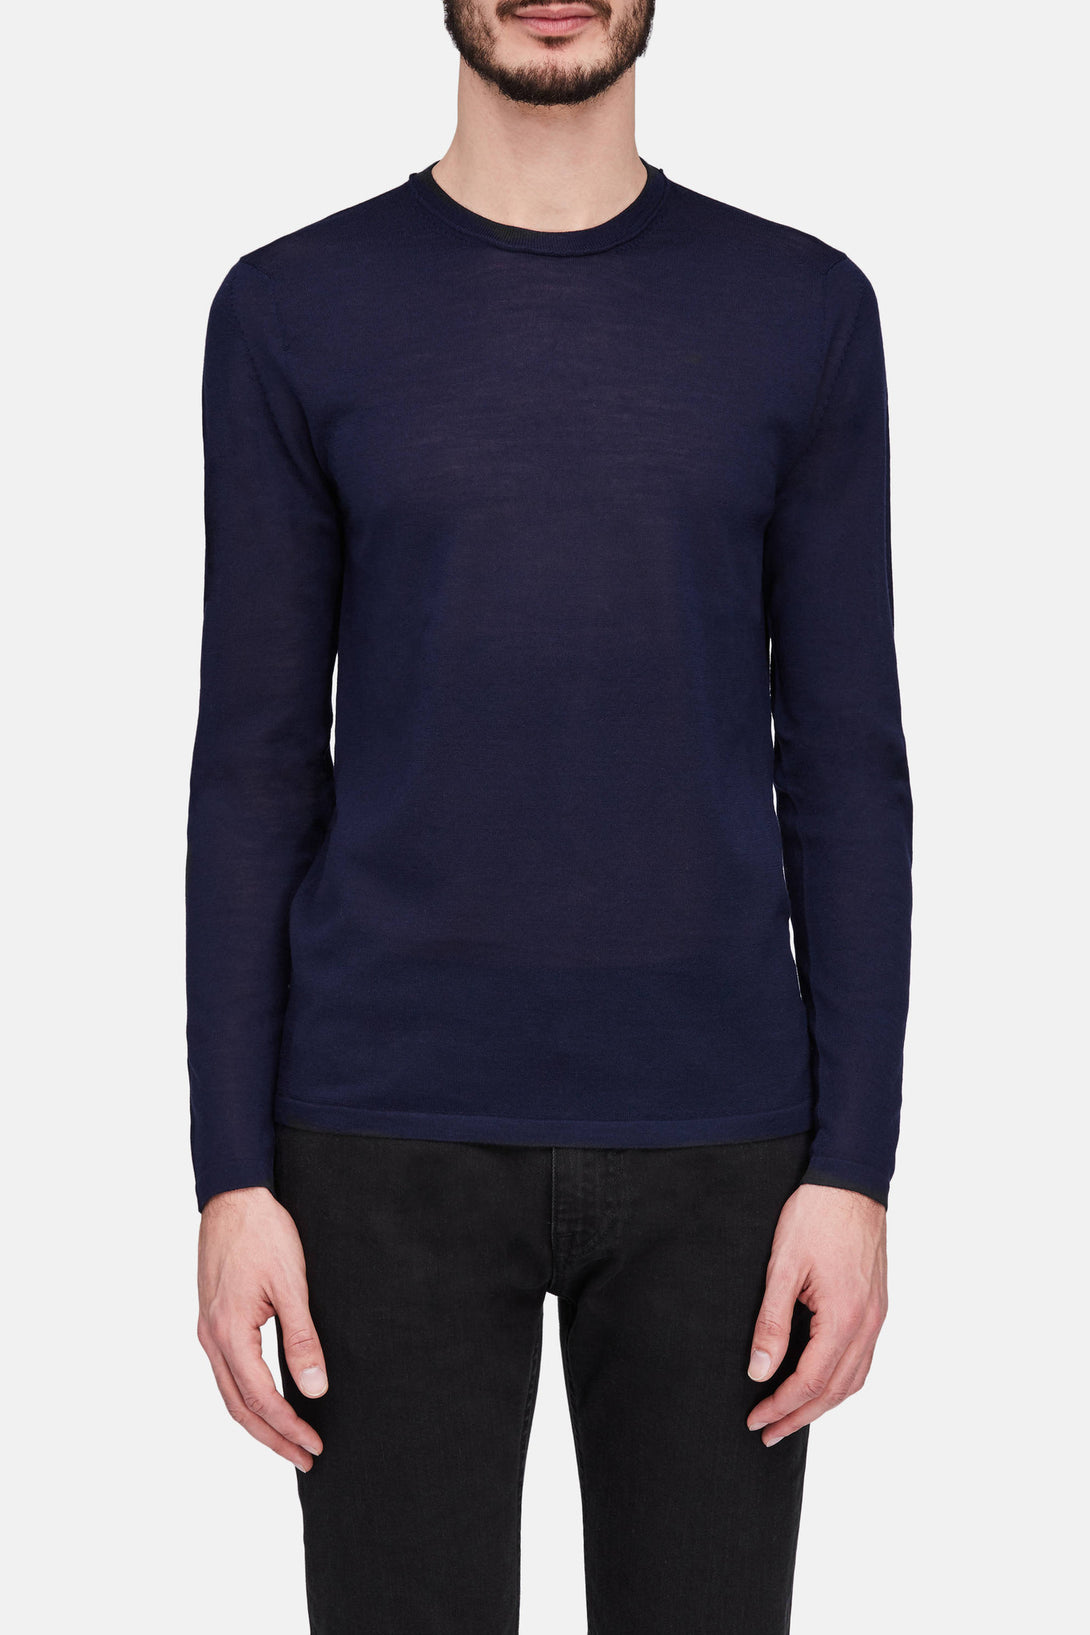 Kort Sweater - Navy